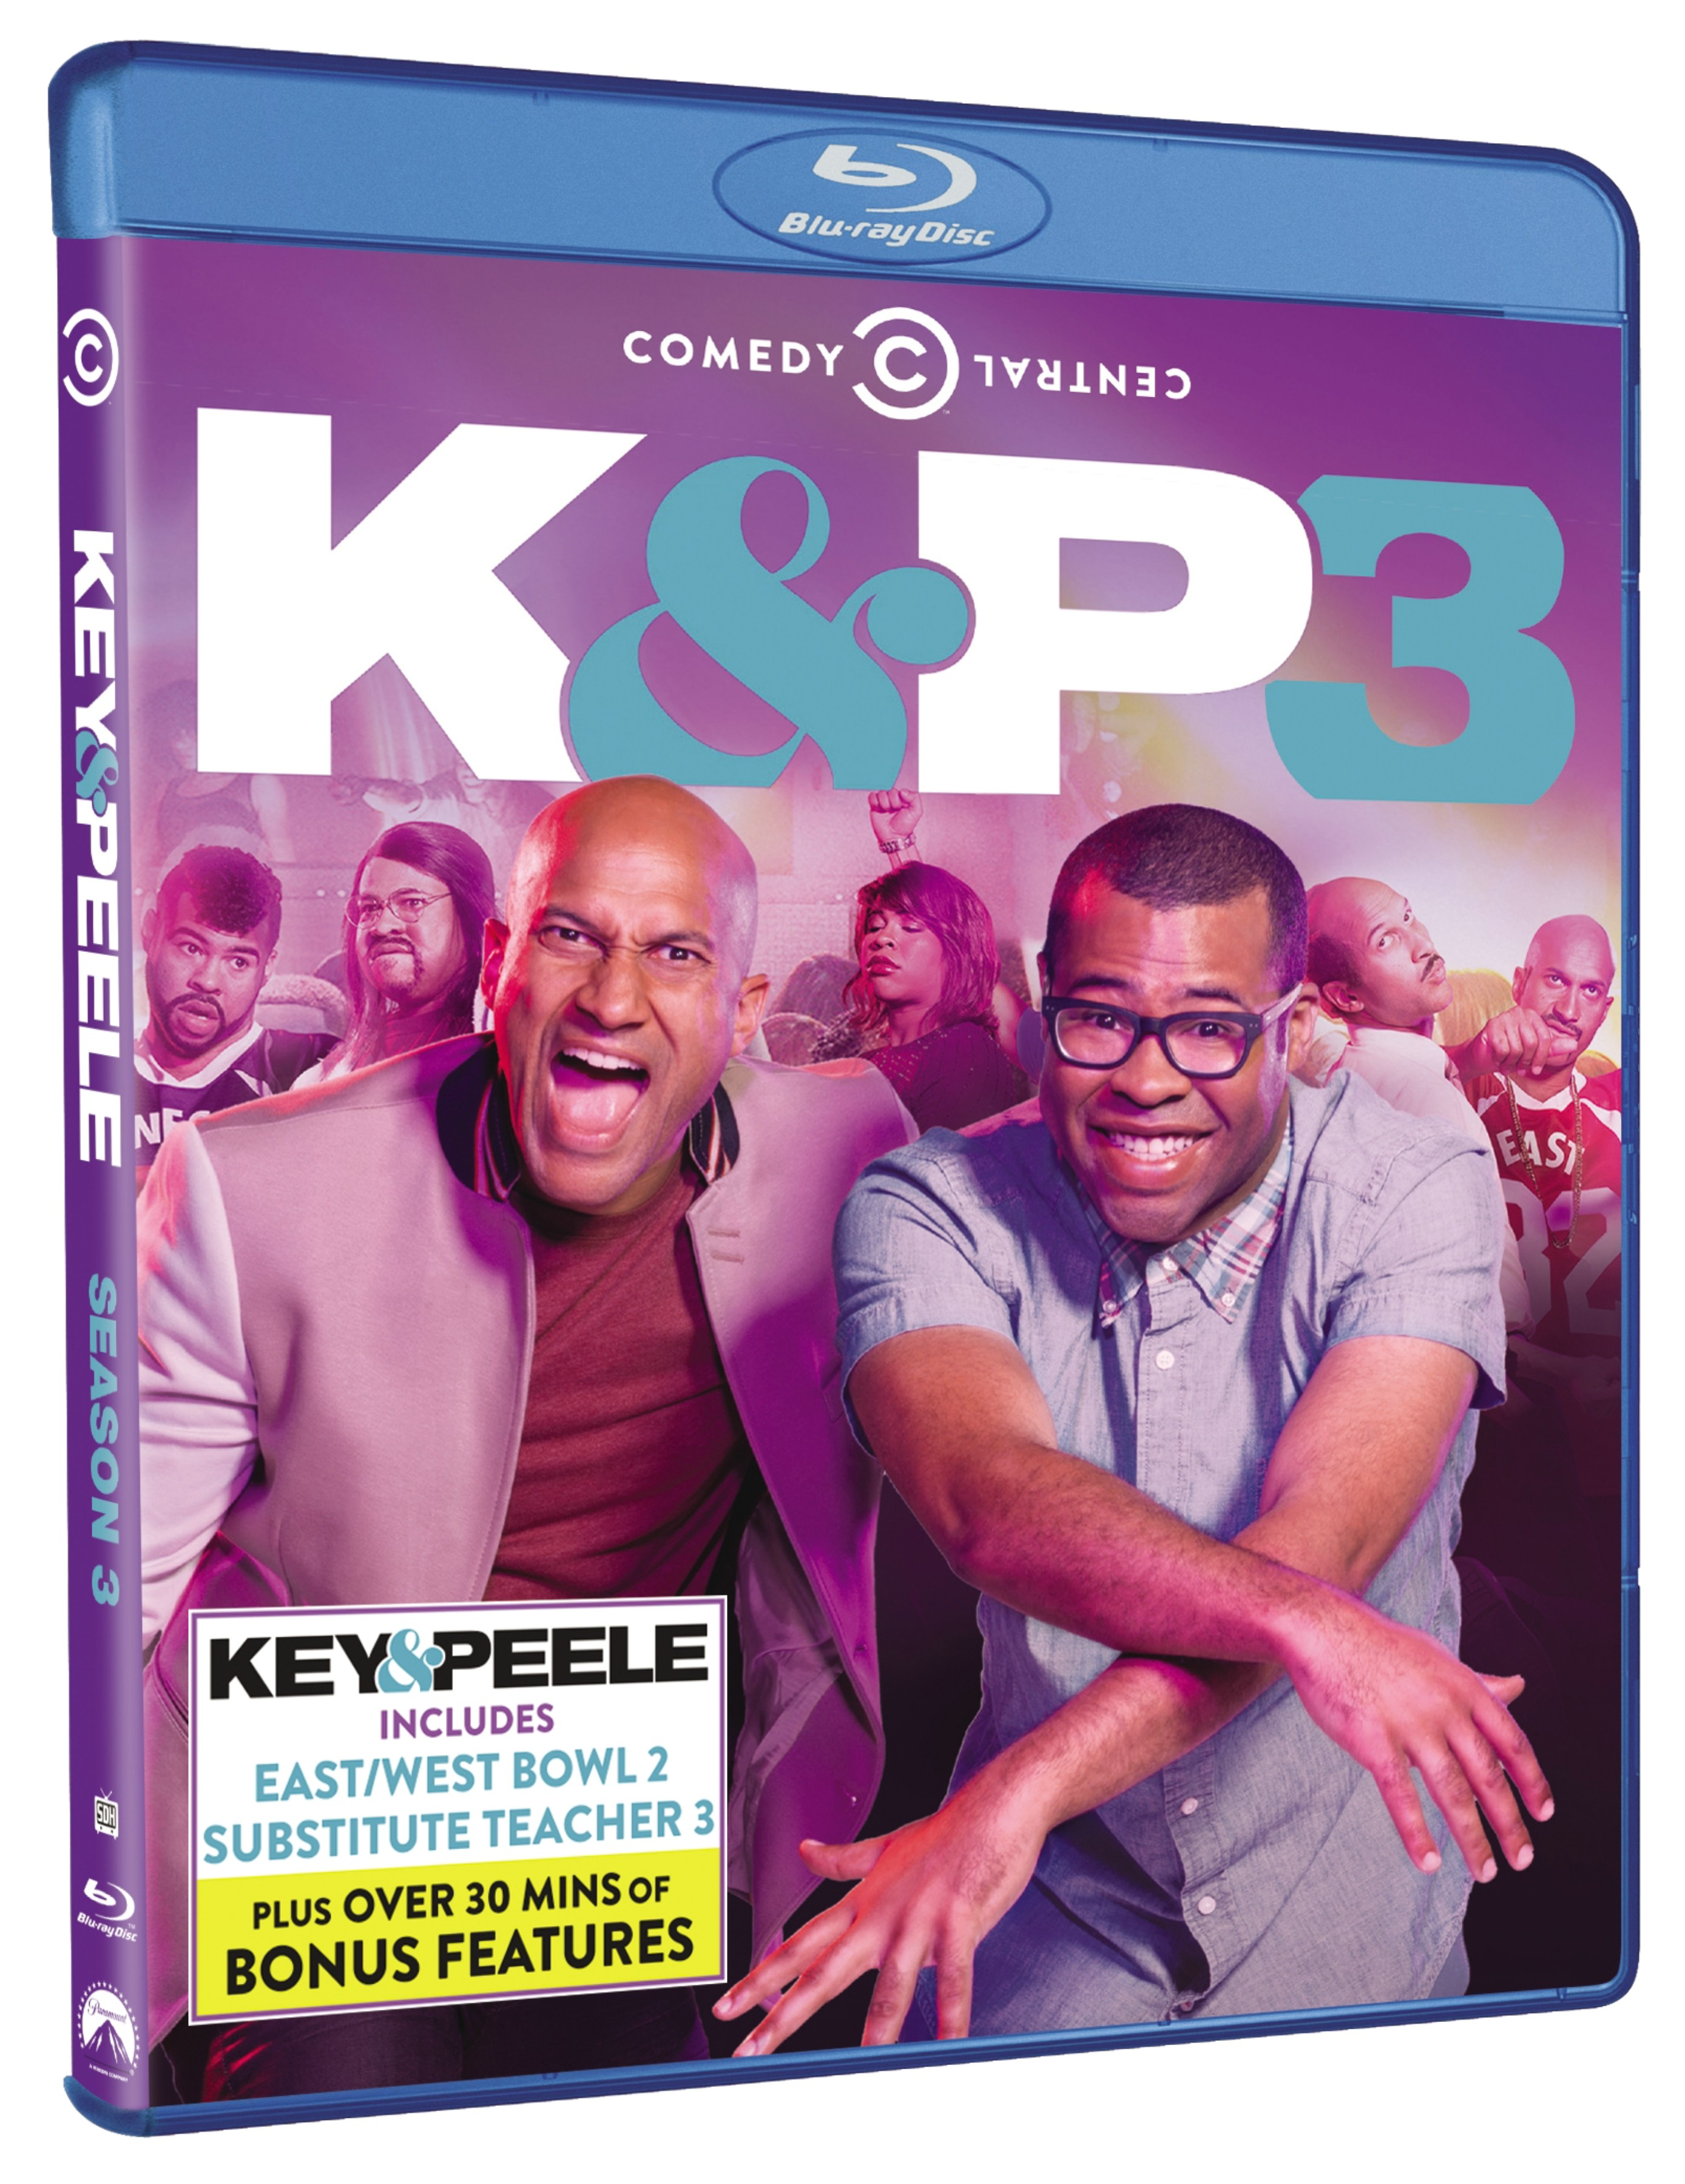 Key and Peele Season 3 Blu-ray Review